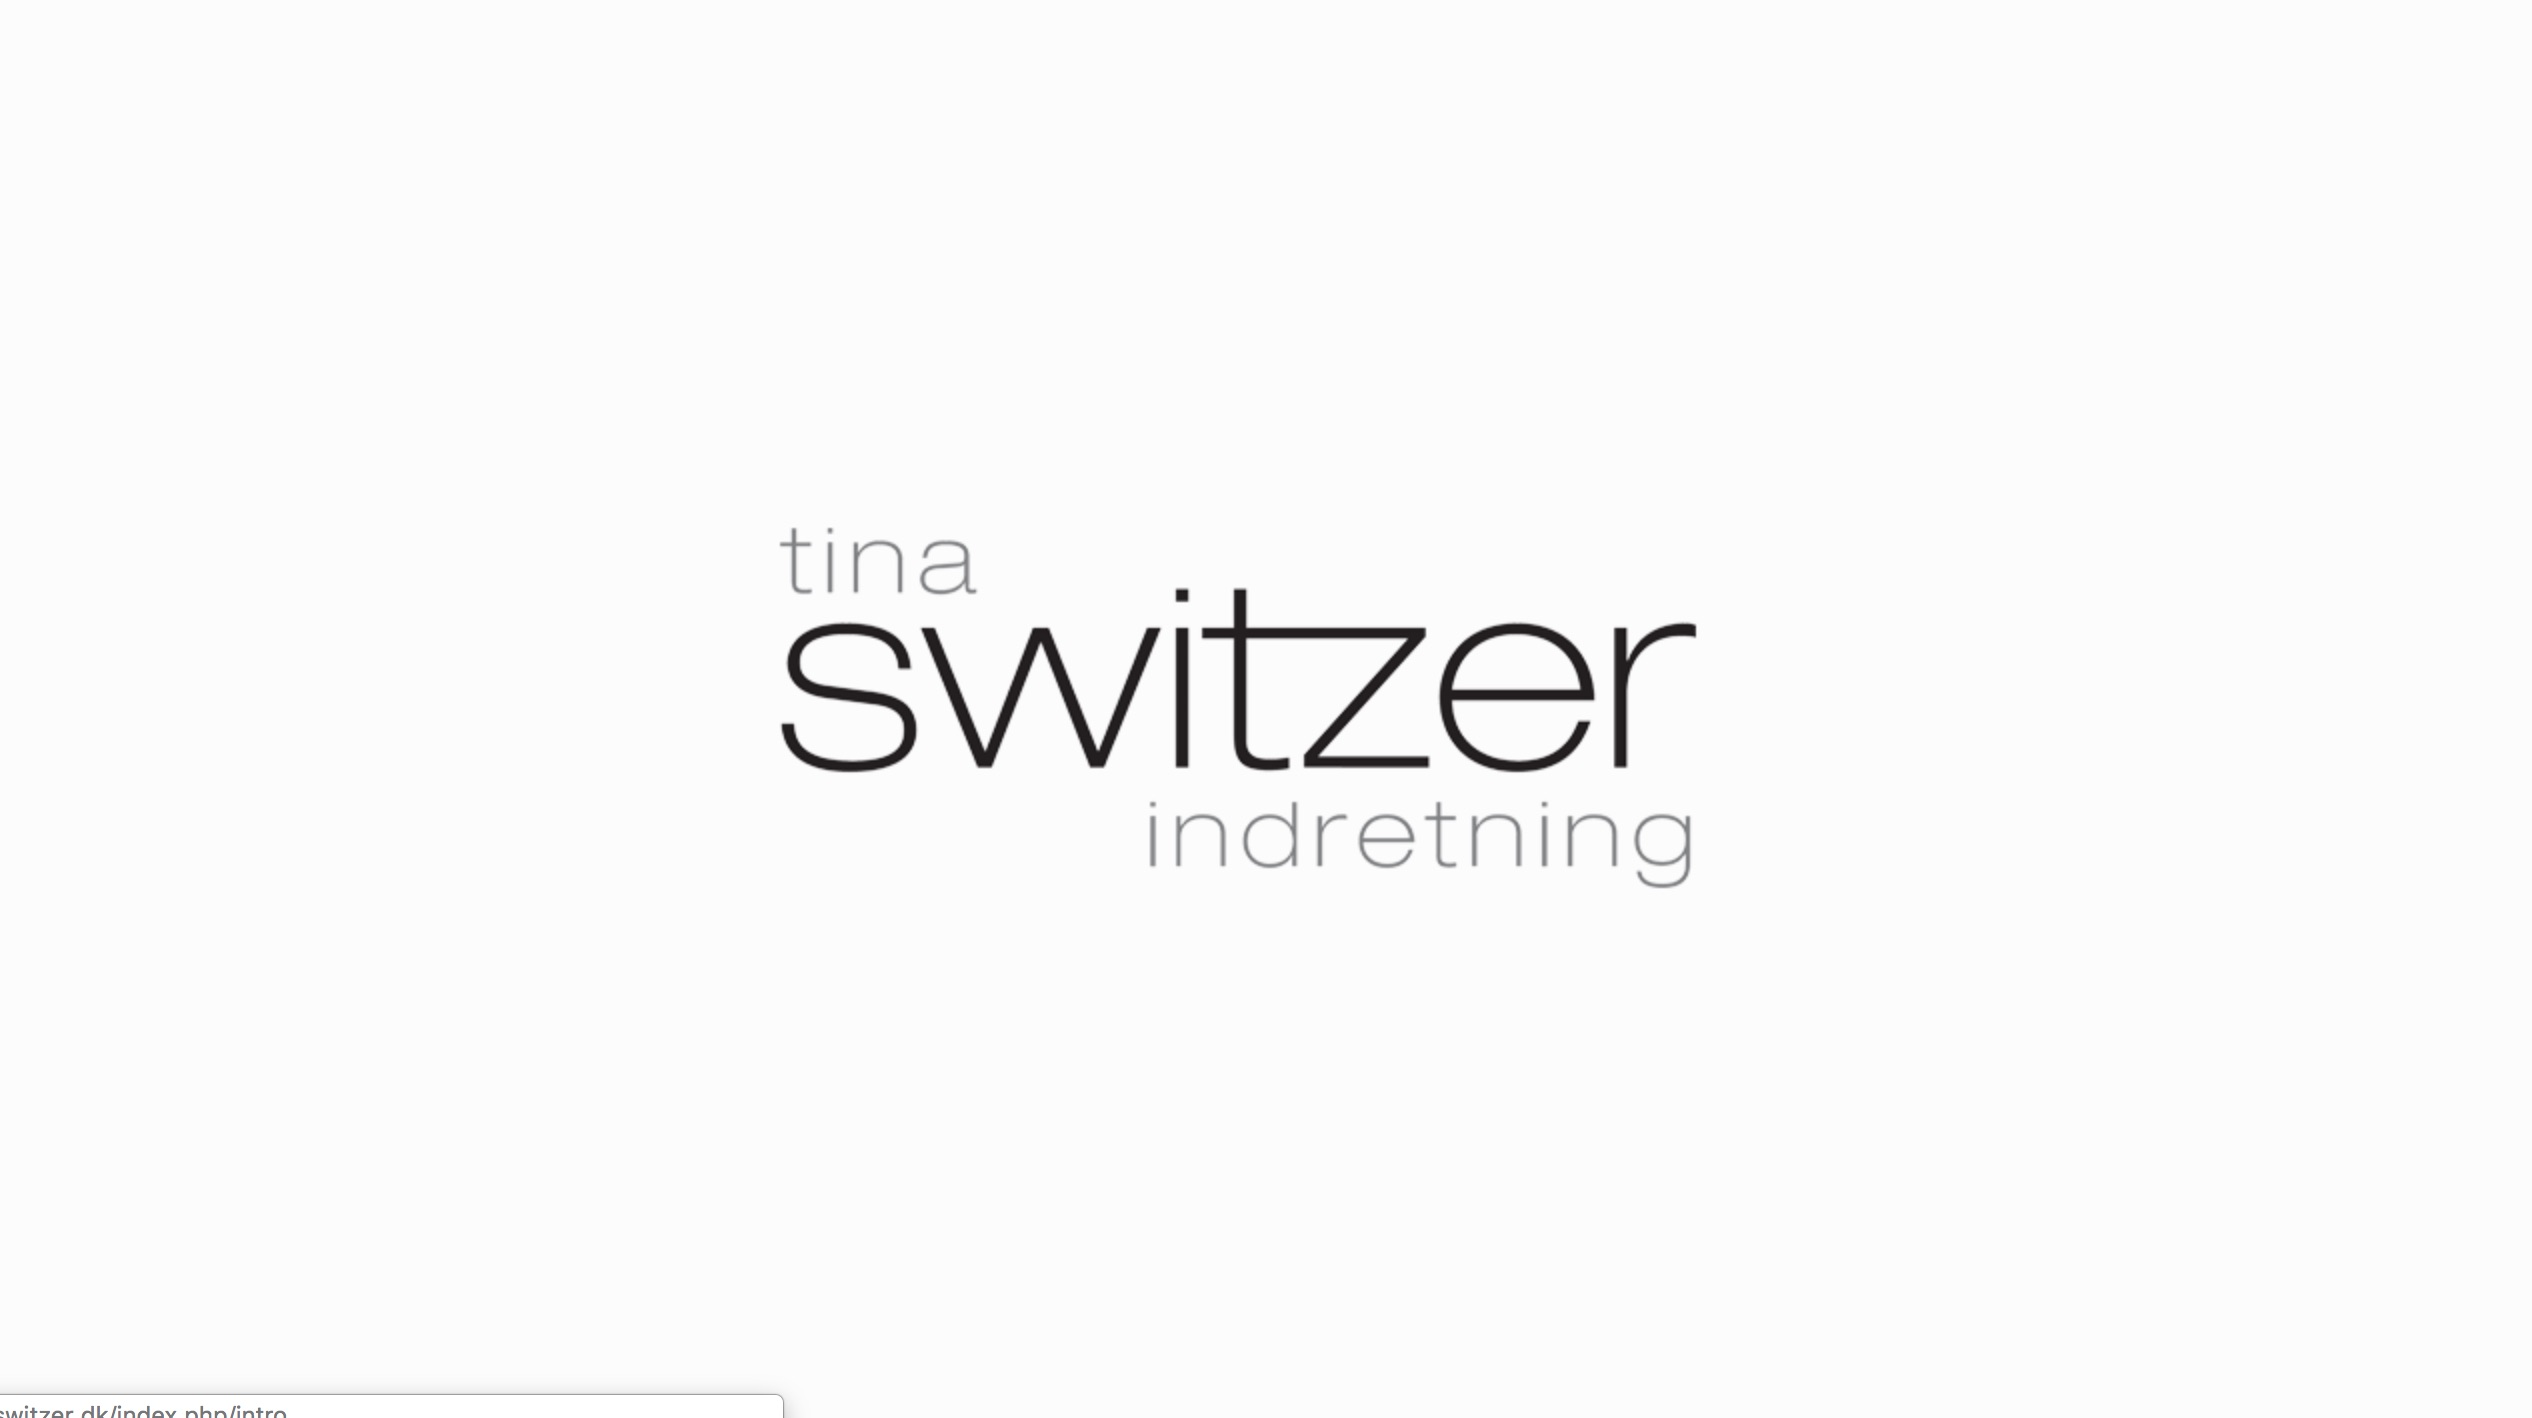 Tina Switzer